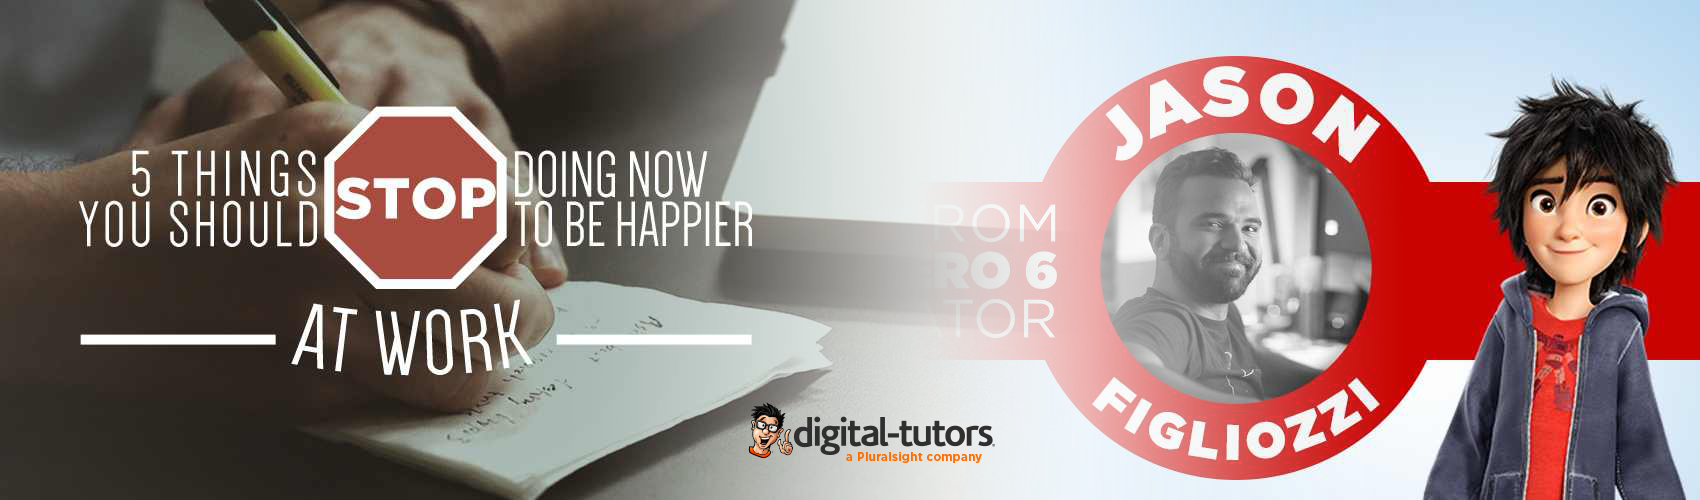 Digital Tutors Blog